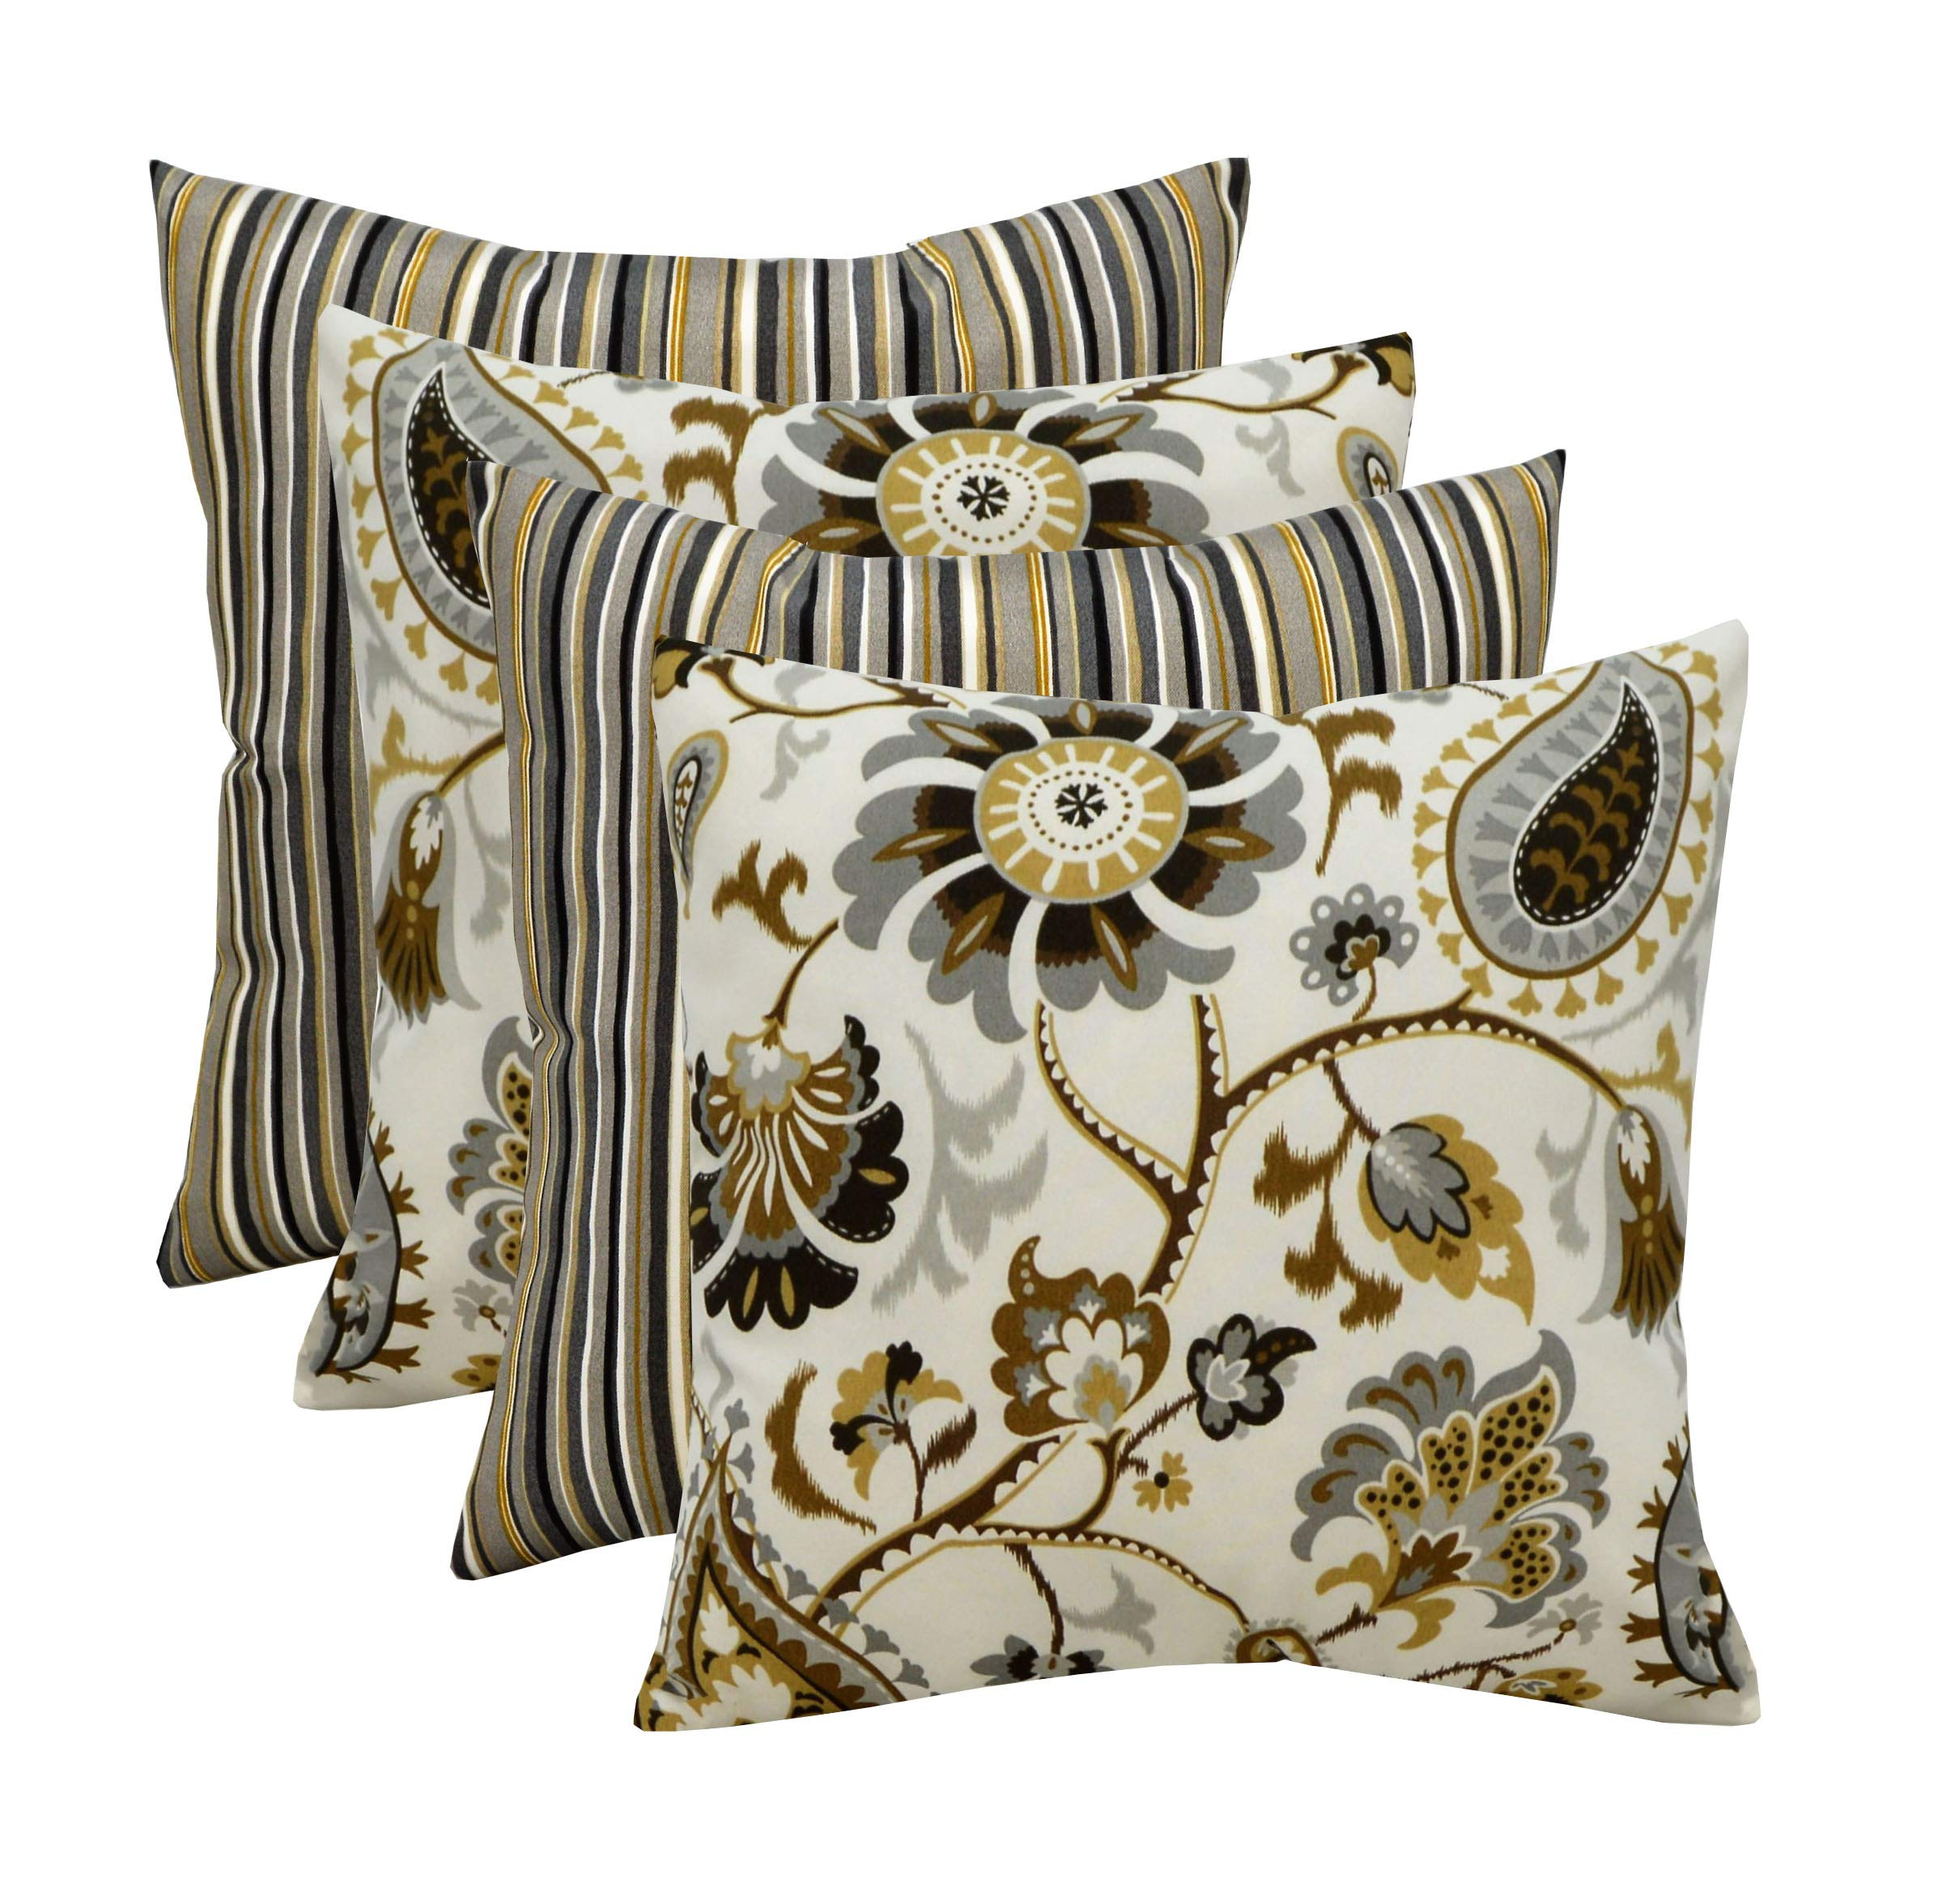 RSH Décor Indoor Outdoor Set of 4 Decorative Toss/Throw Pillows ~ Silver Cloud Paisley Floral & Tan Black Gold Grey/Gray Ivory Cala Slate Stripe (20'' x 20'')